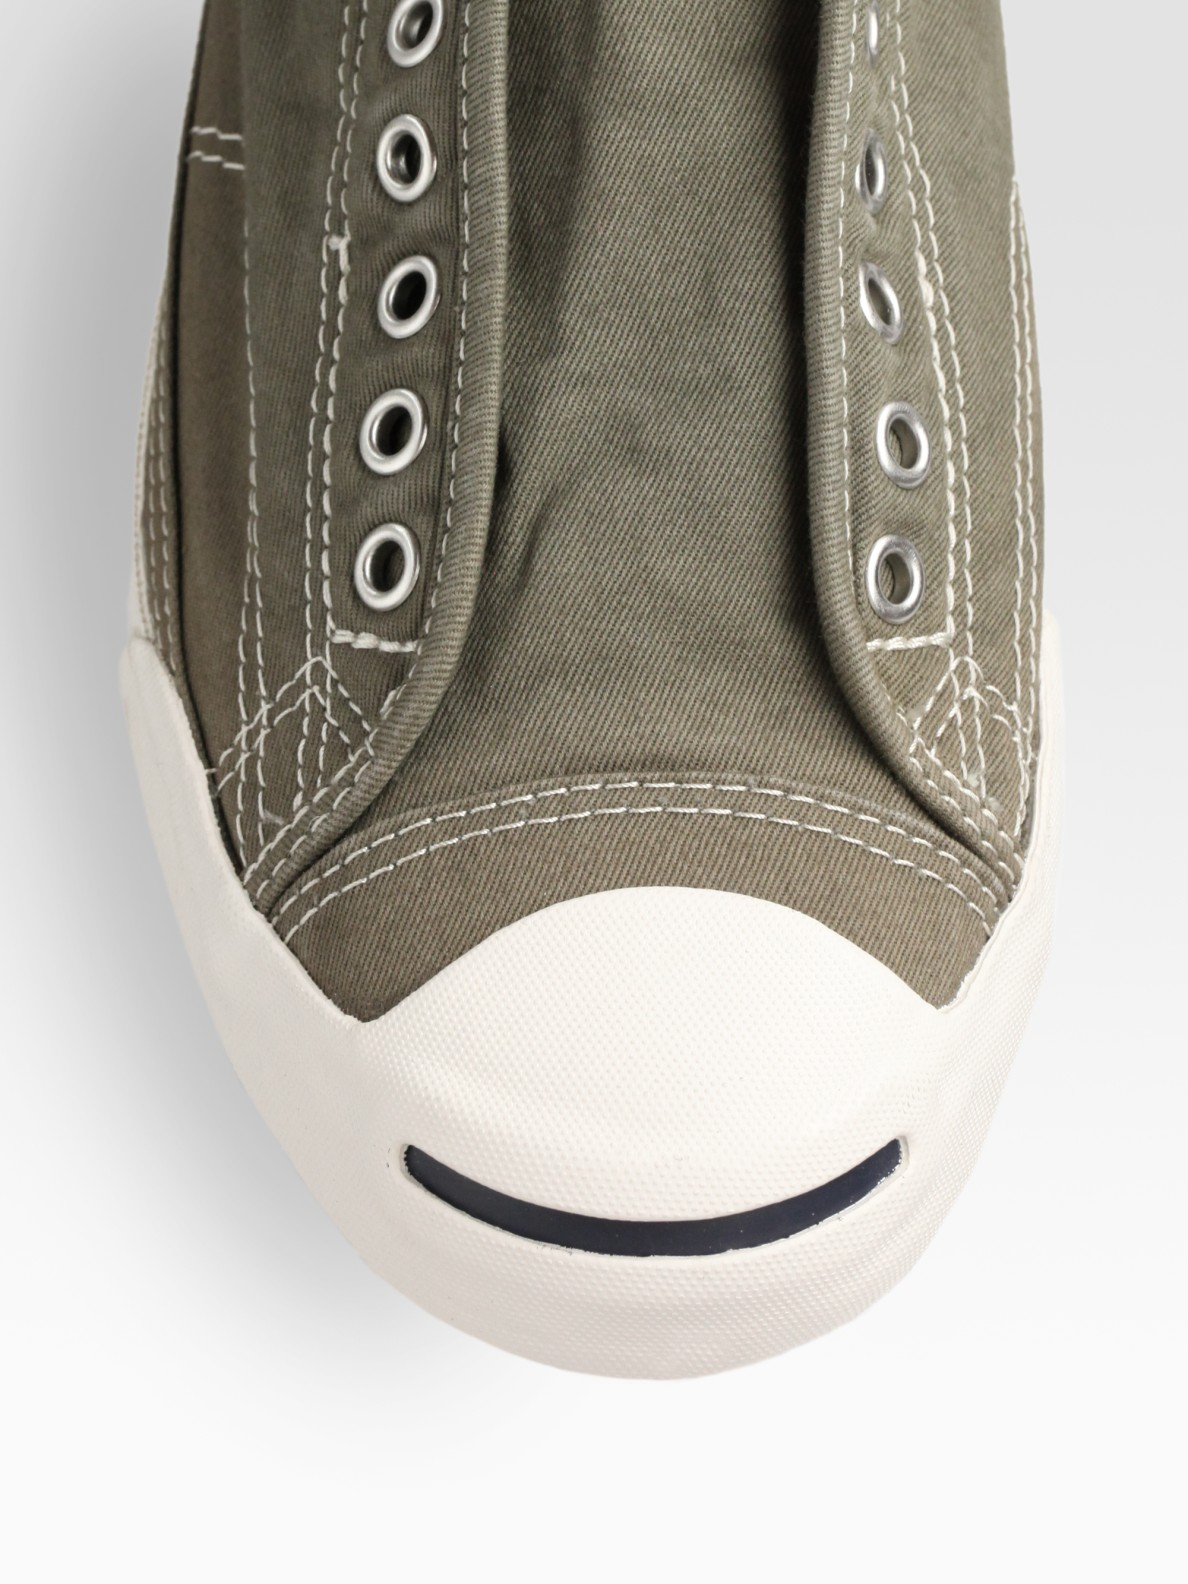 jack purcell converse laceless Online